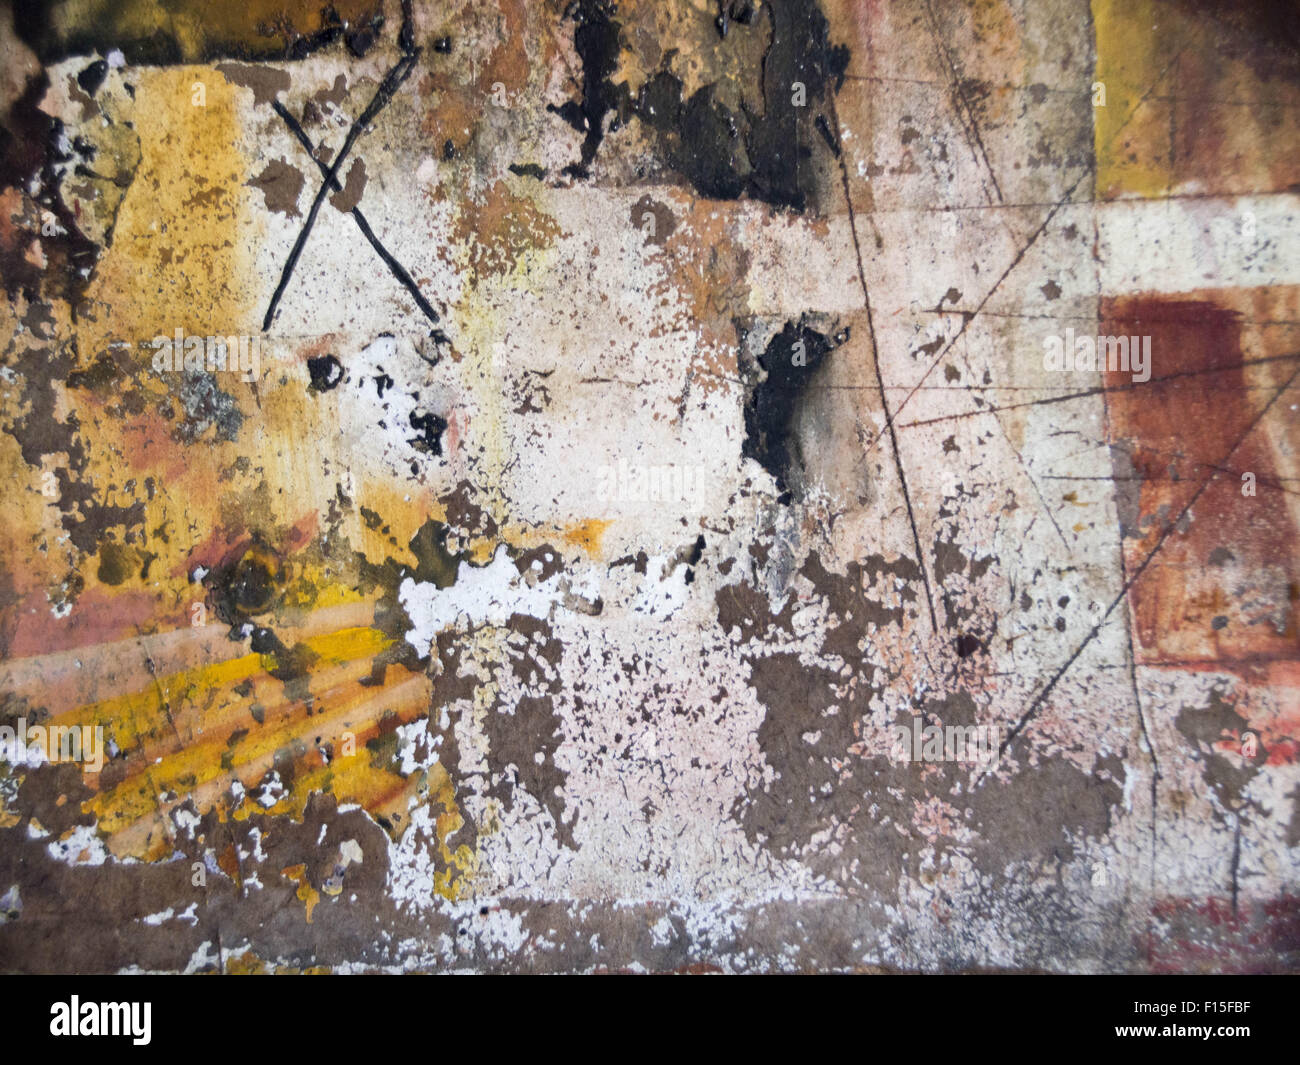 Abstract Wallpaper Of Oil Painting With Brush Strokes In